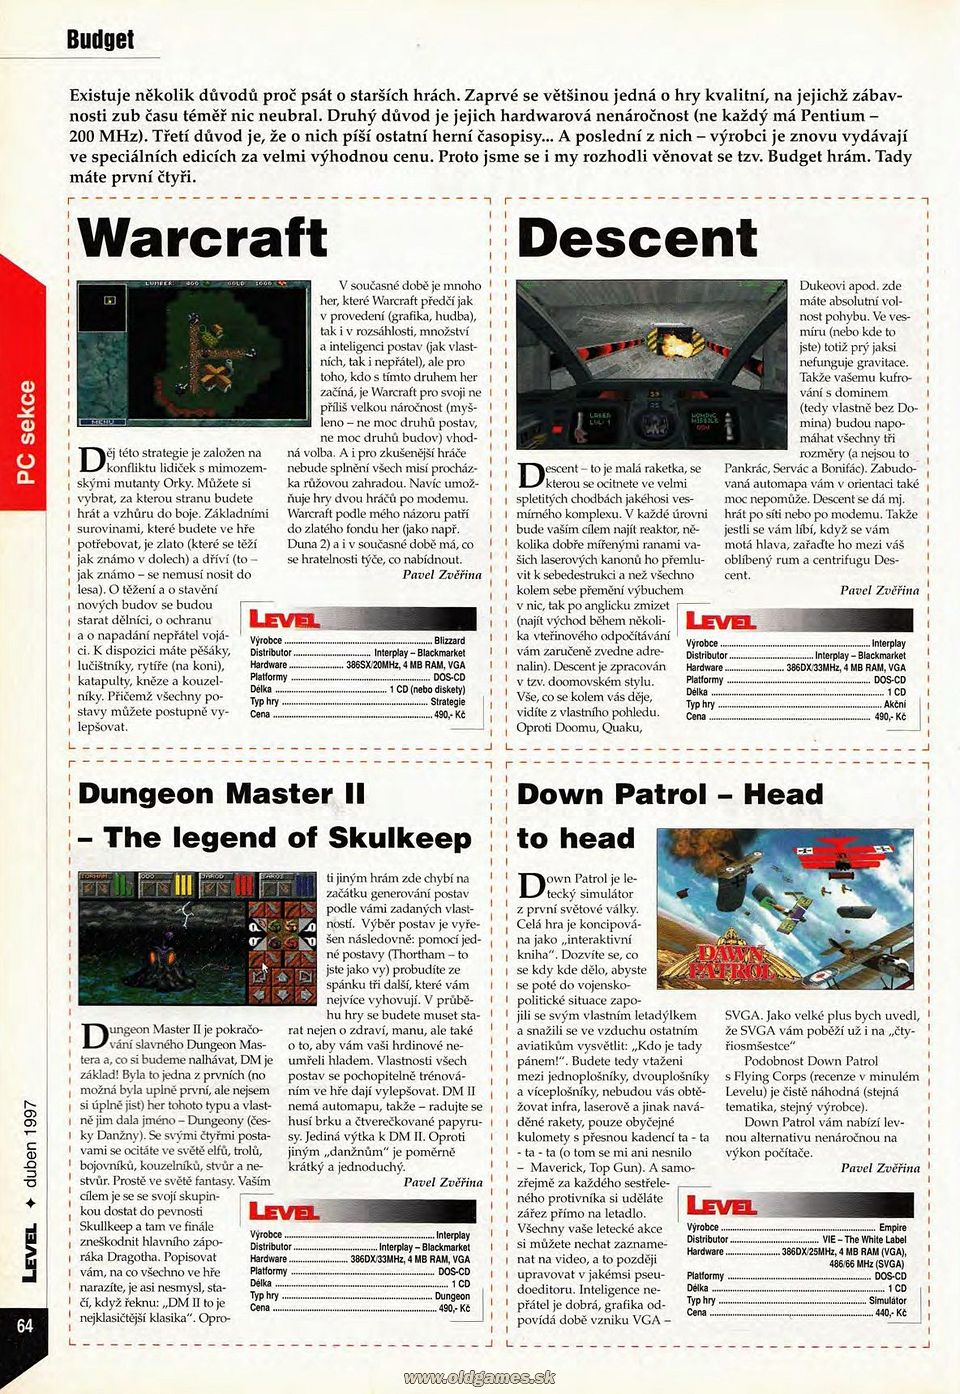 Dungeon Master II for PC Review published in Czech magazine 'Level', Issue #27 April 1997, Page 64